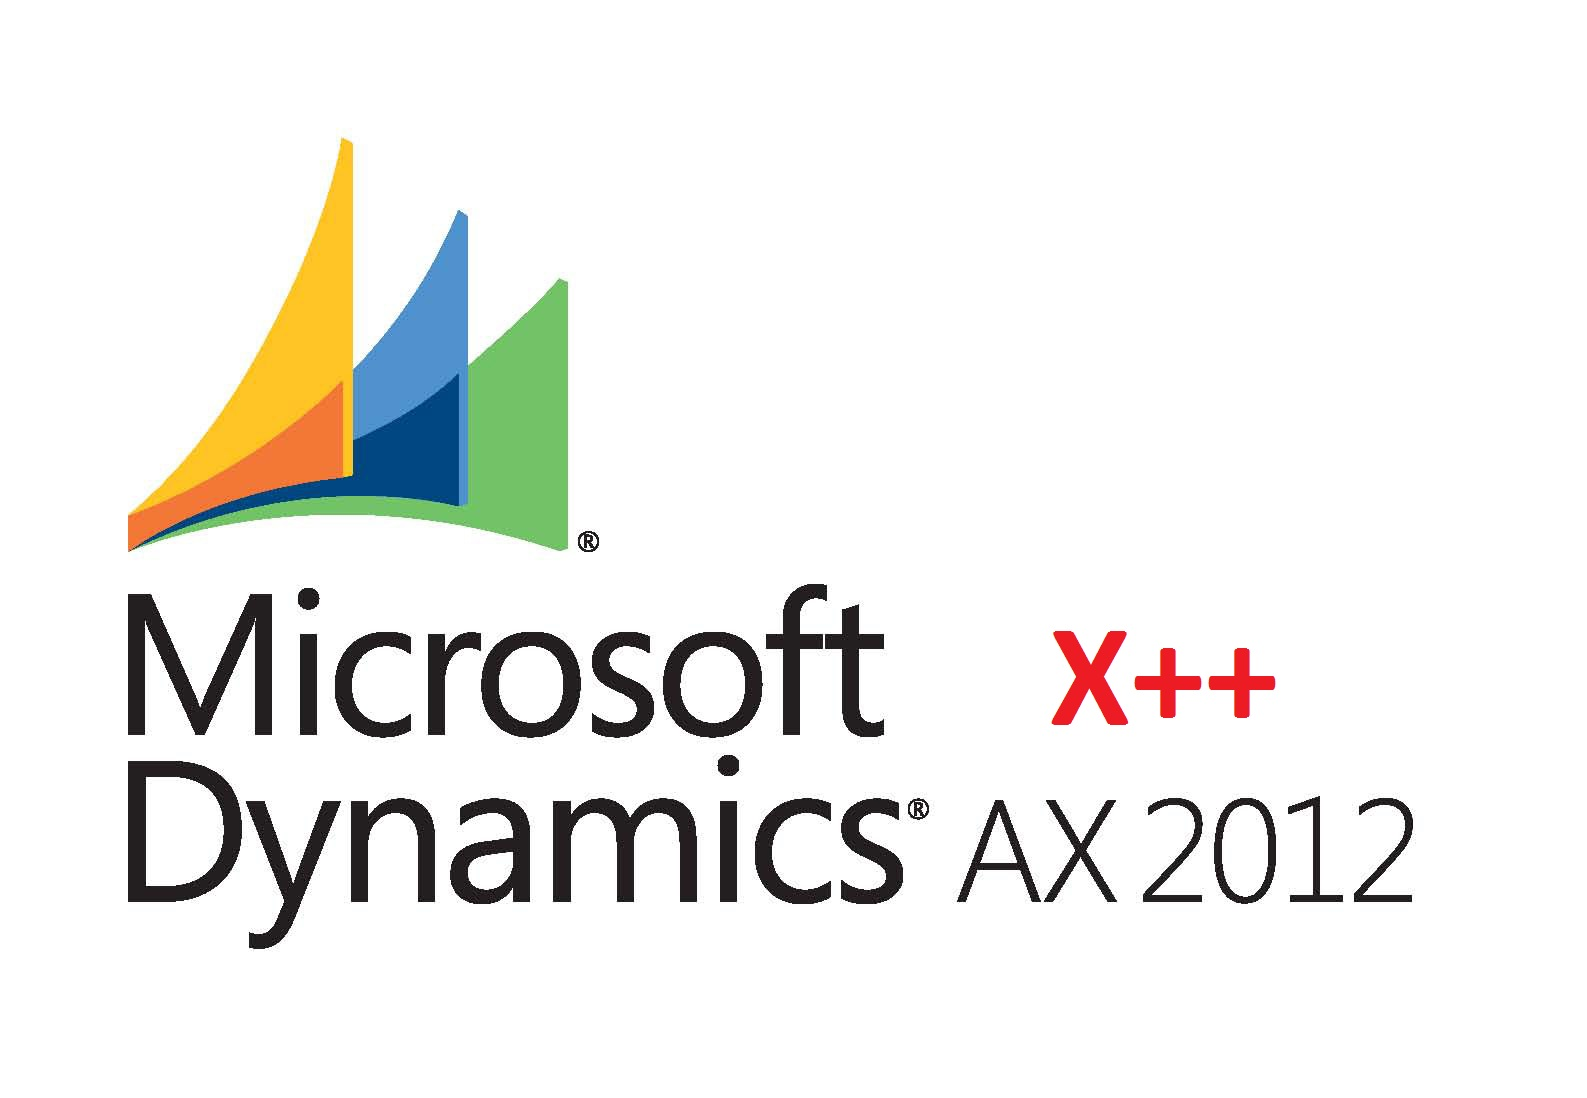 How to Creating Sales Order in Dynamics AX 2012 Through X++